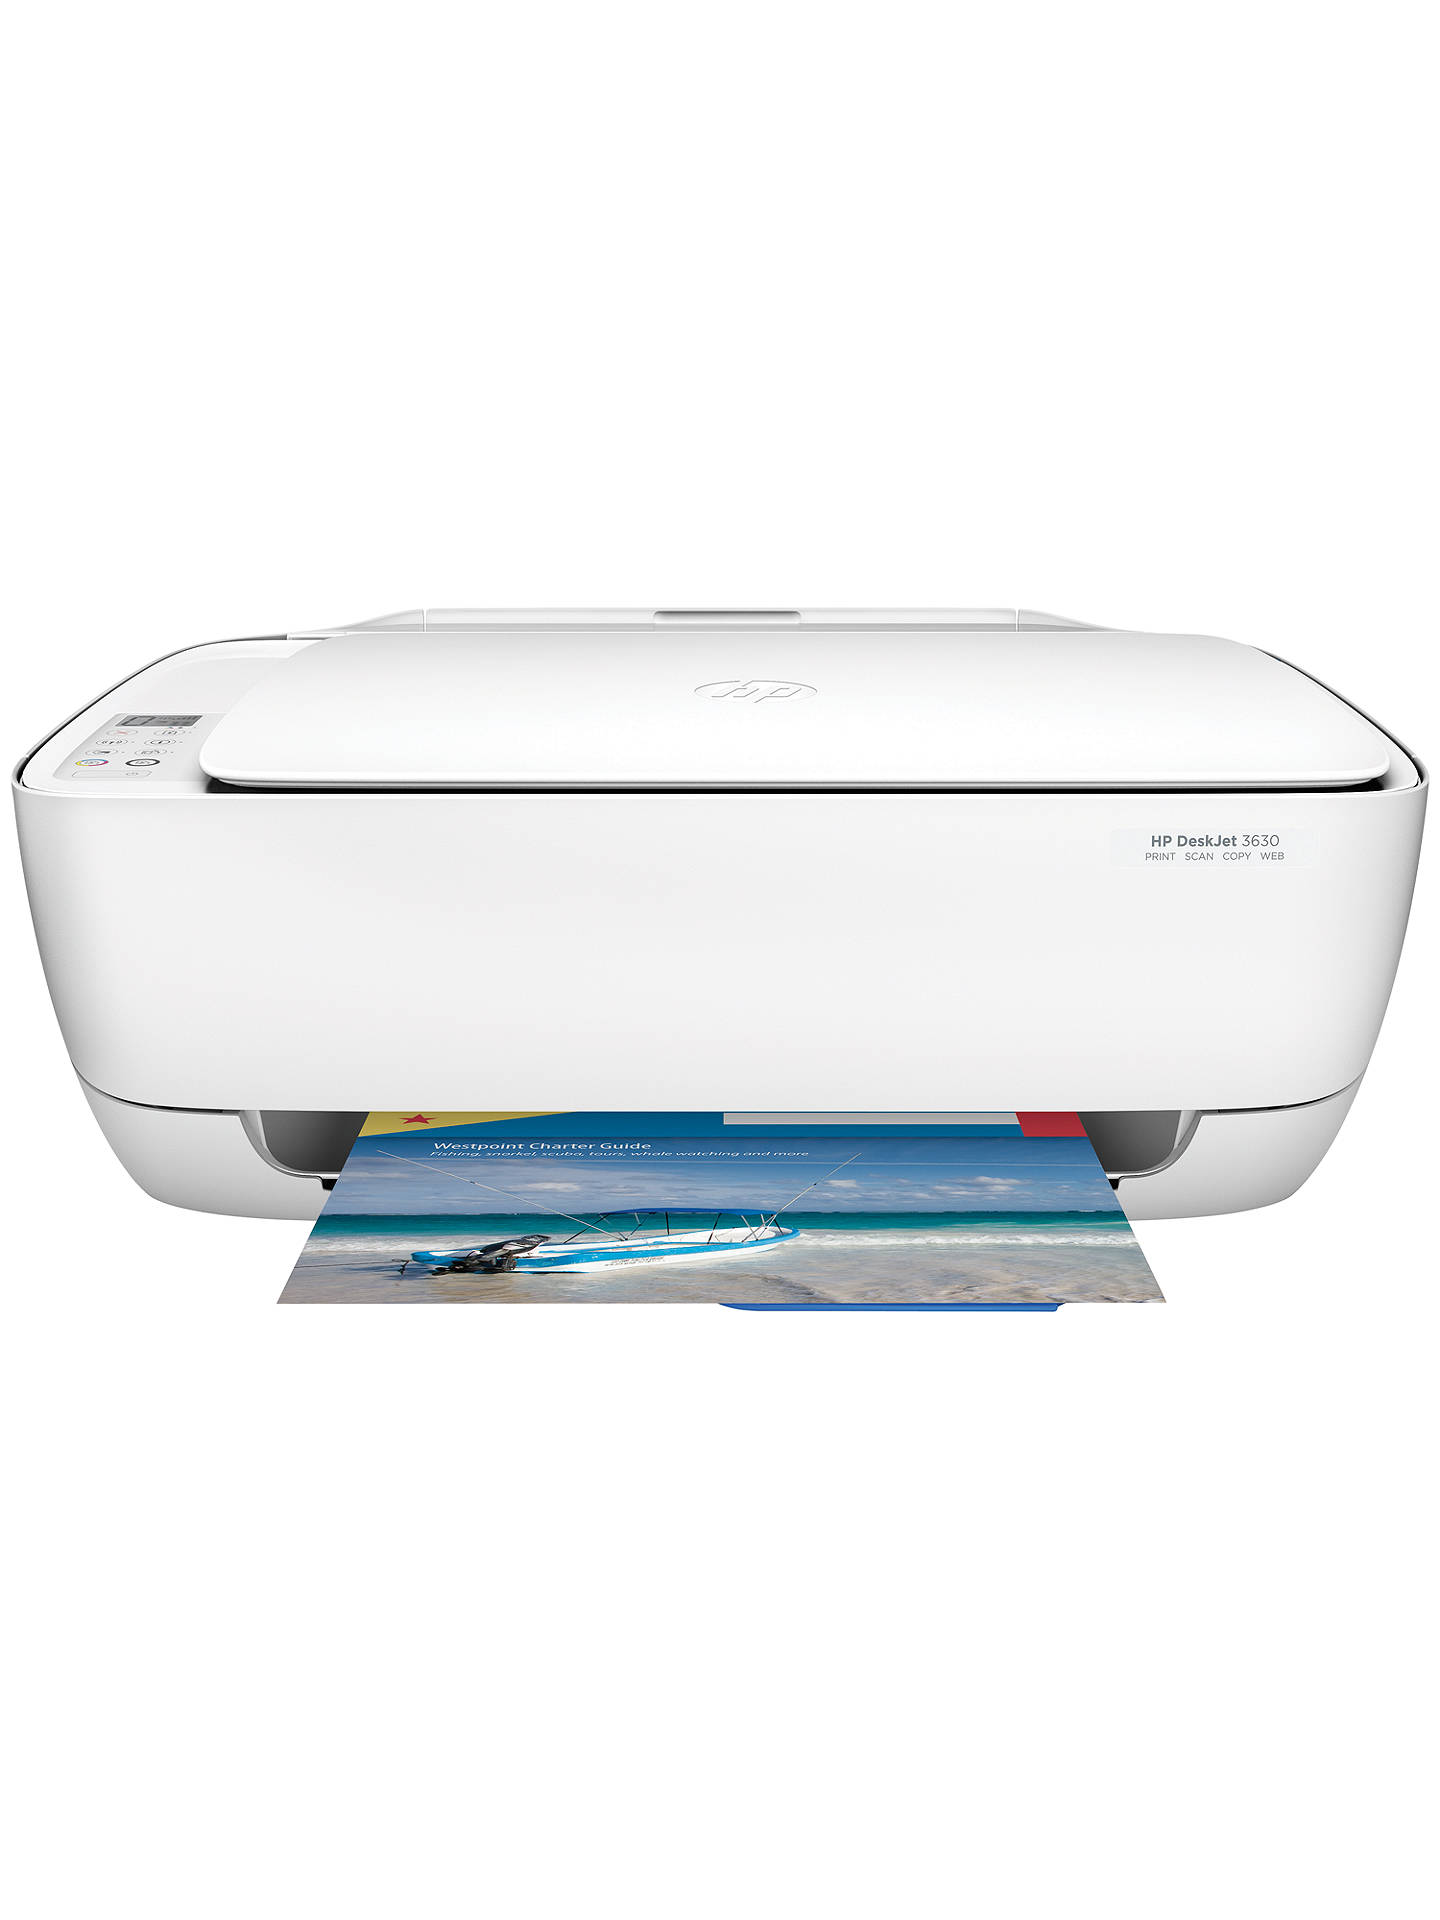 HP Deskjet 3630 All-In-One Wireless Printer, HP Instant Ink Compatible